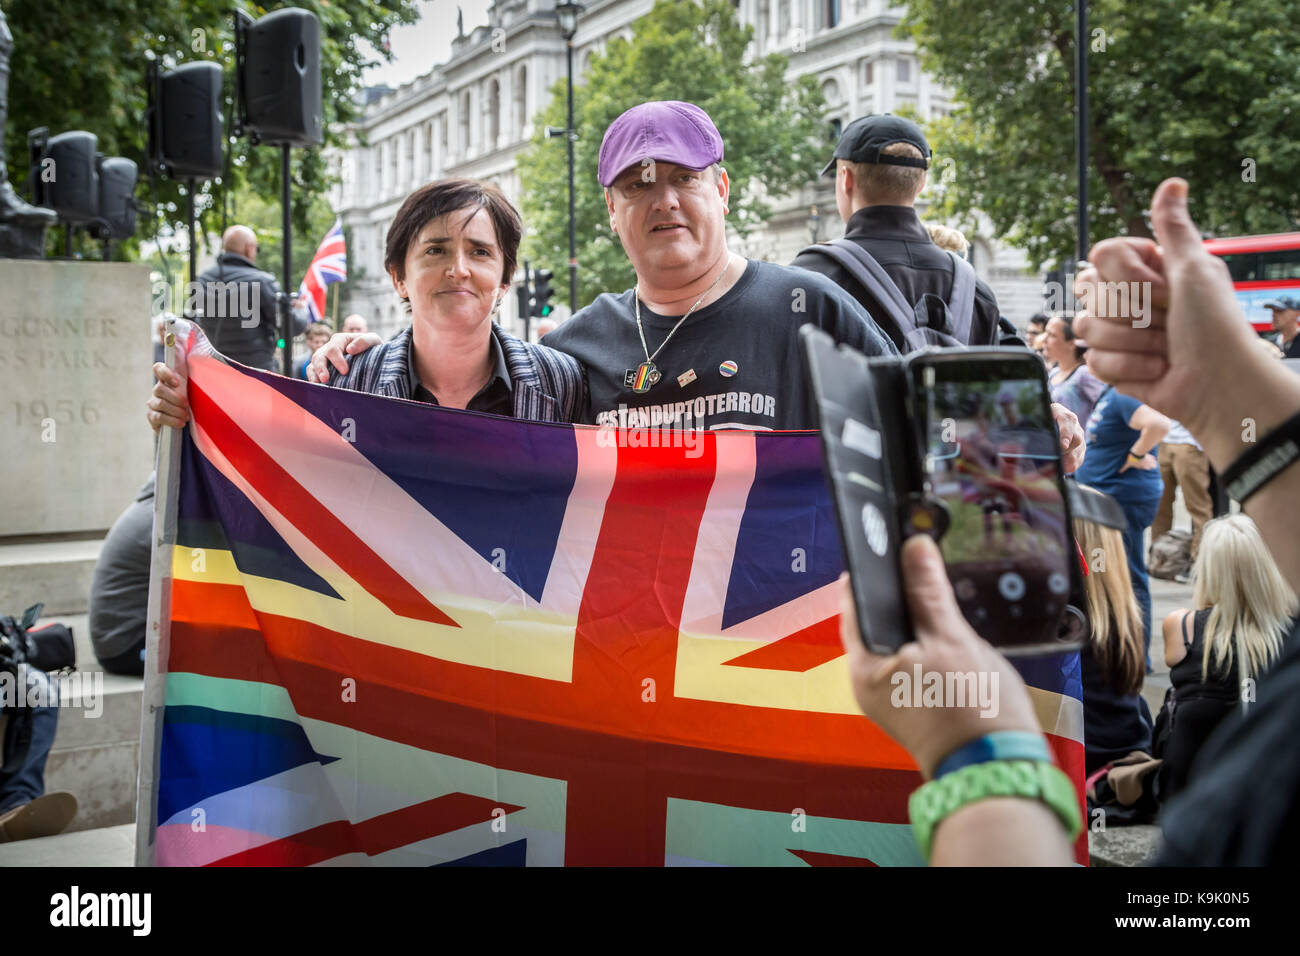 London, UK. 23rd Sept, 2017. Anne Marie Waters(L), UKIP candidate and director of Sharia Watch UK, poses for photos - Stock Image